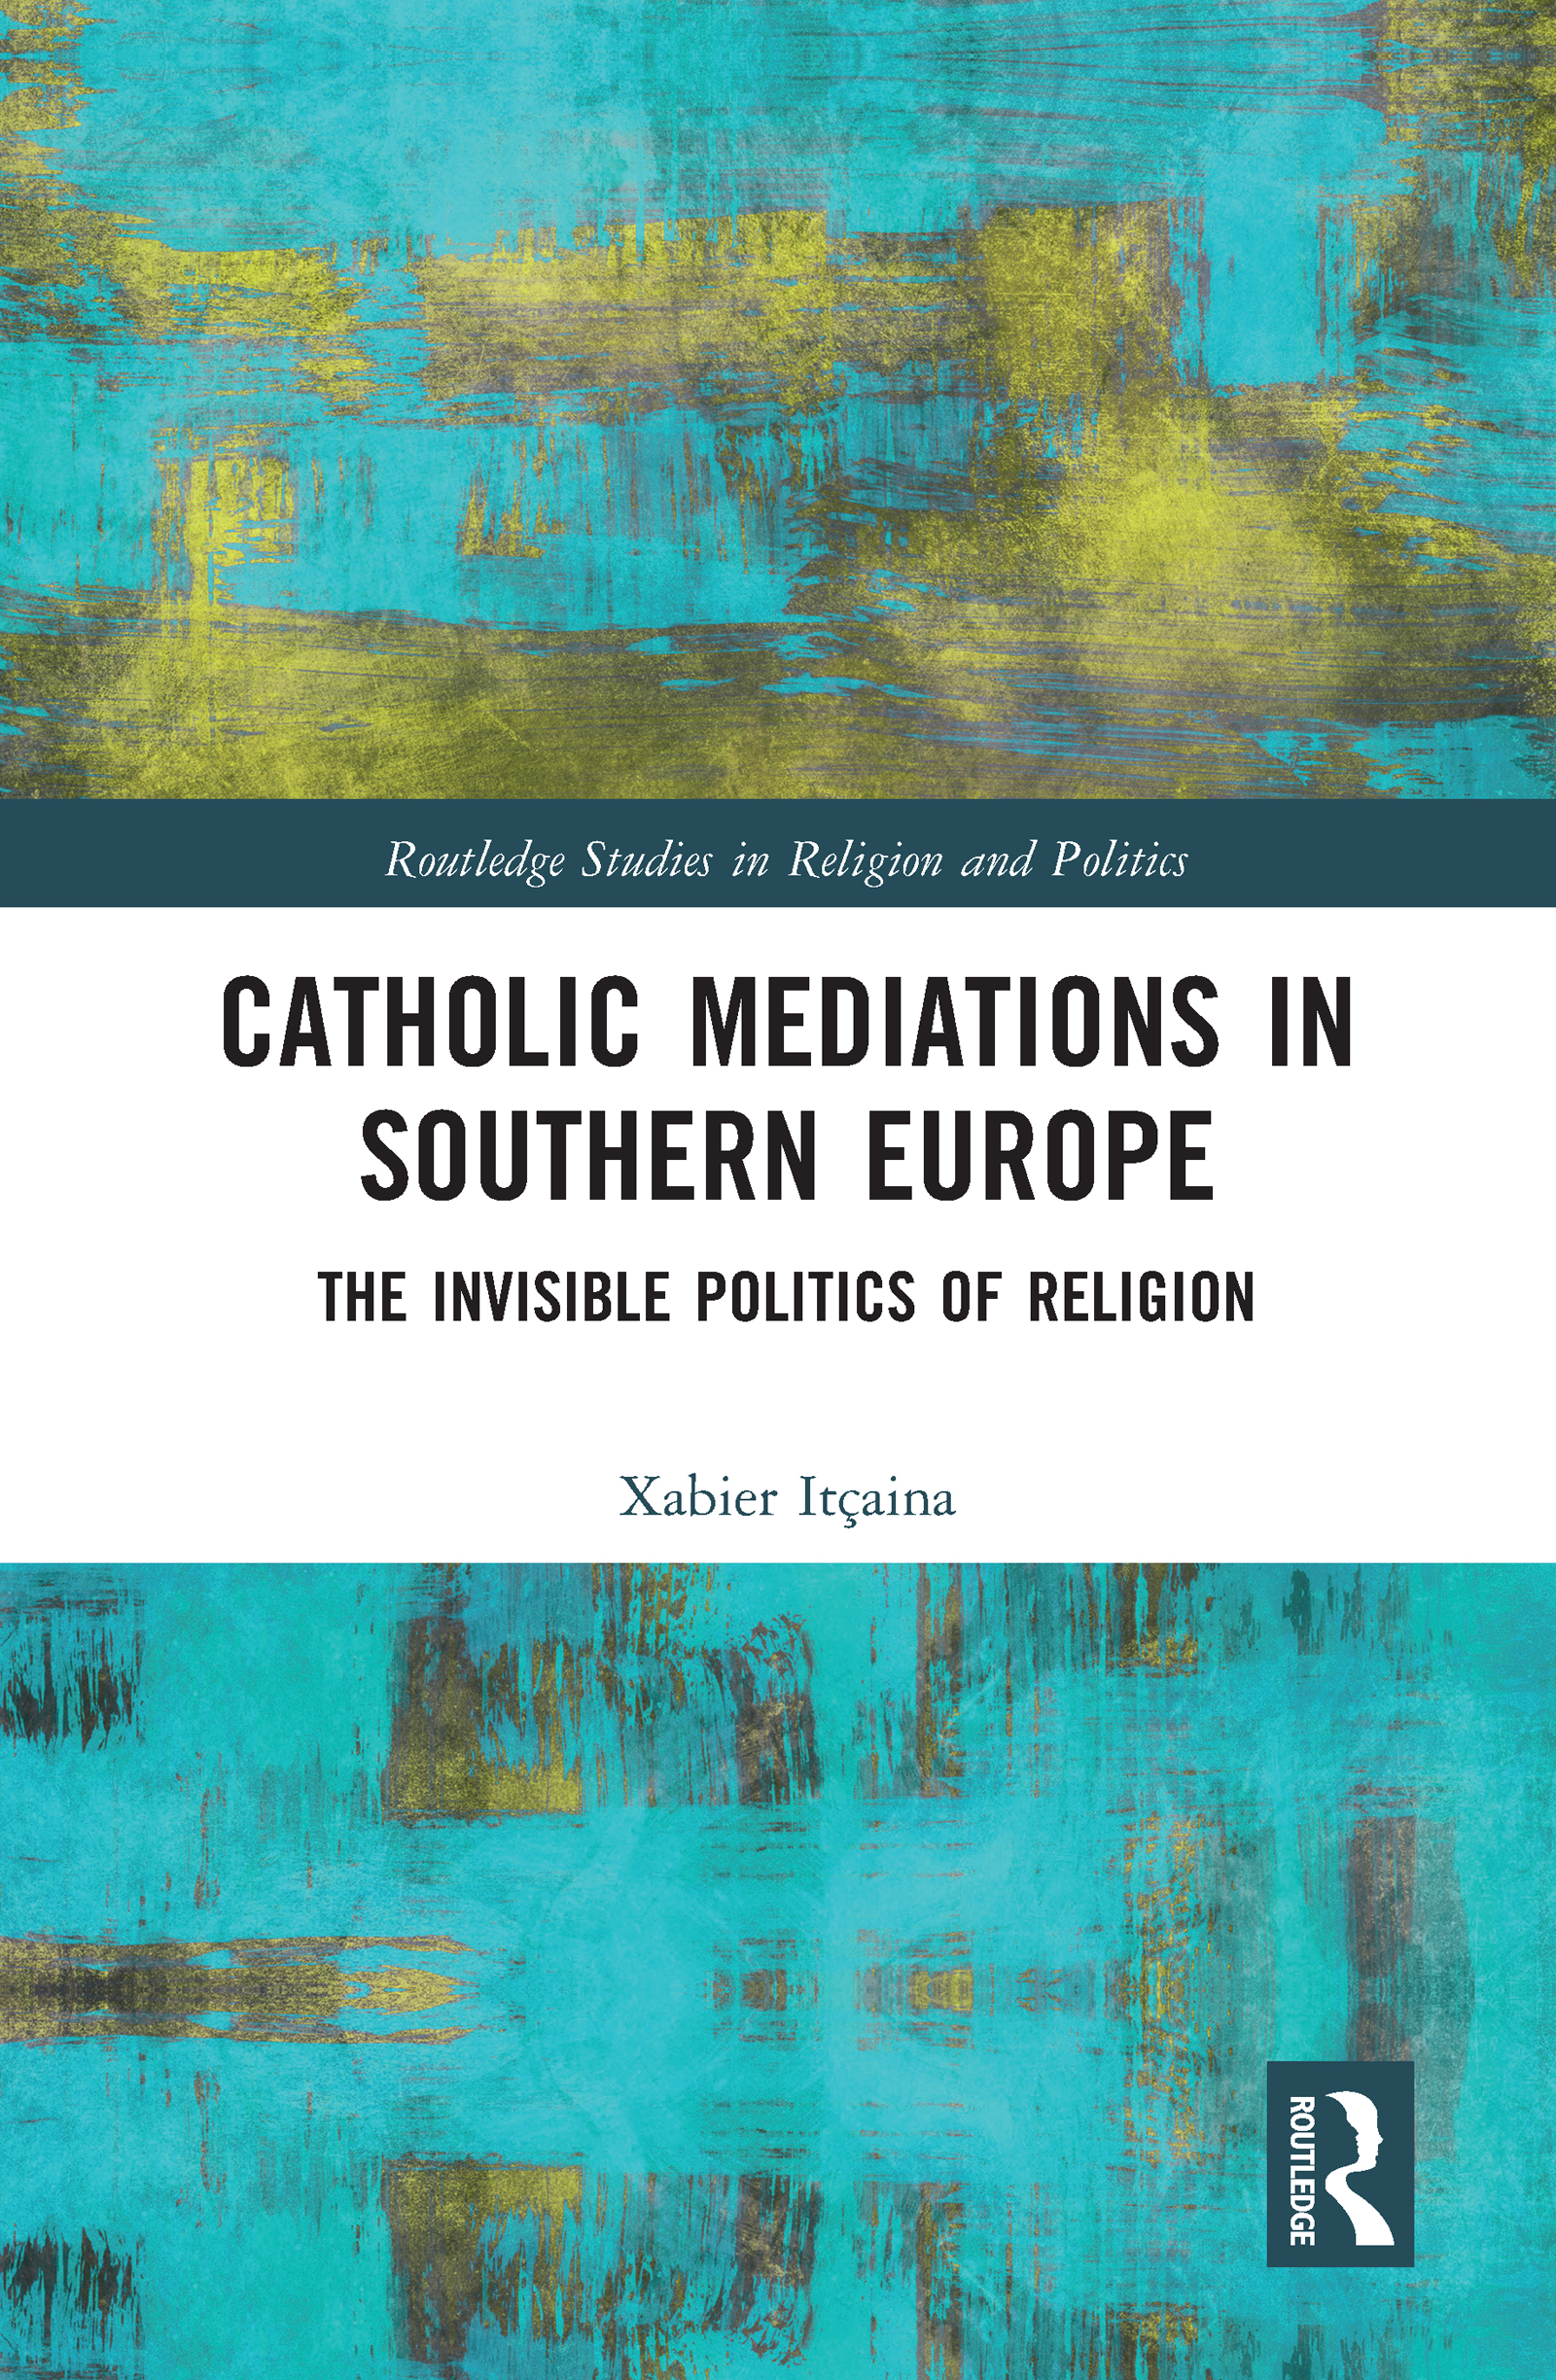 Catholic Mediations in Southern Europe